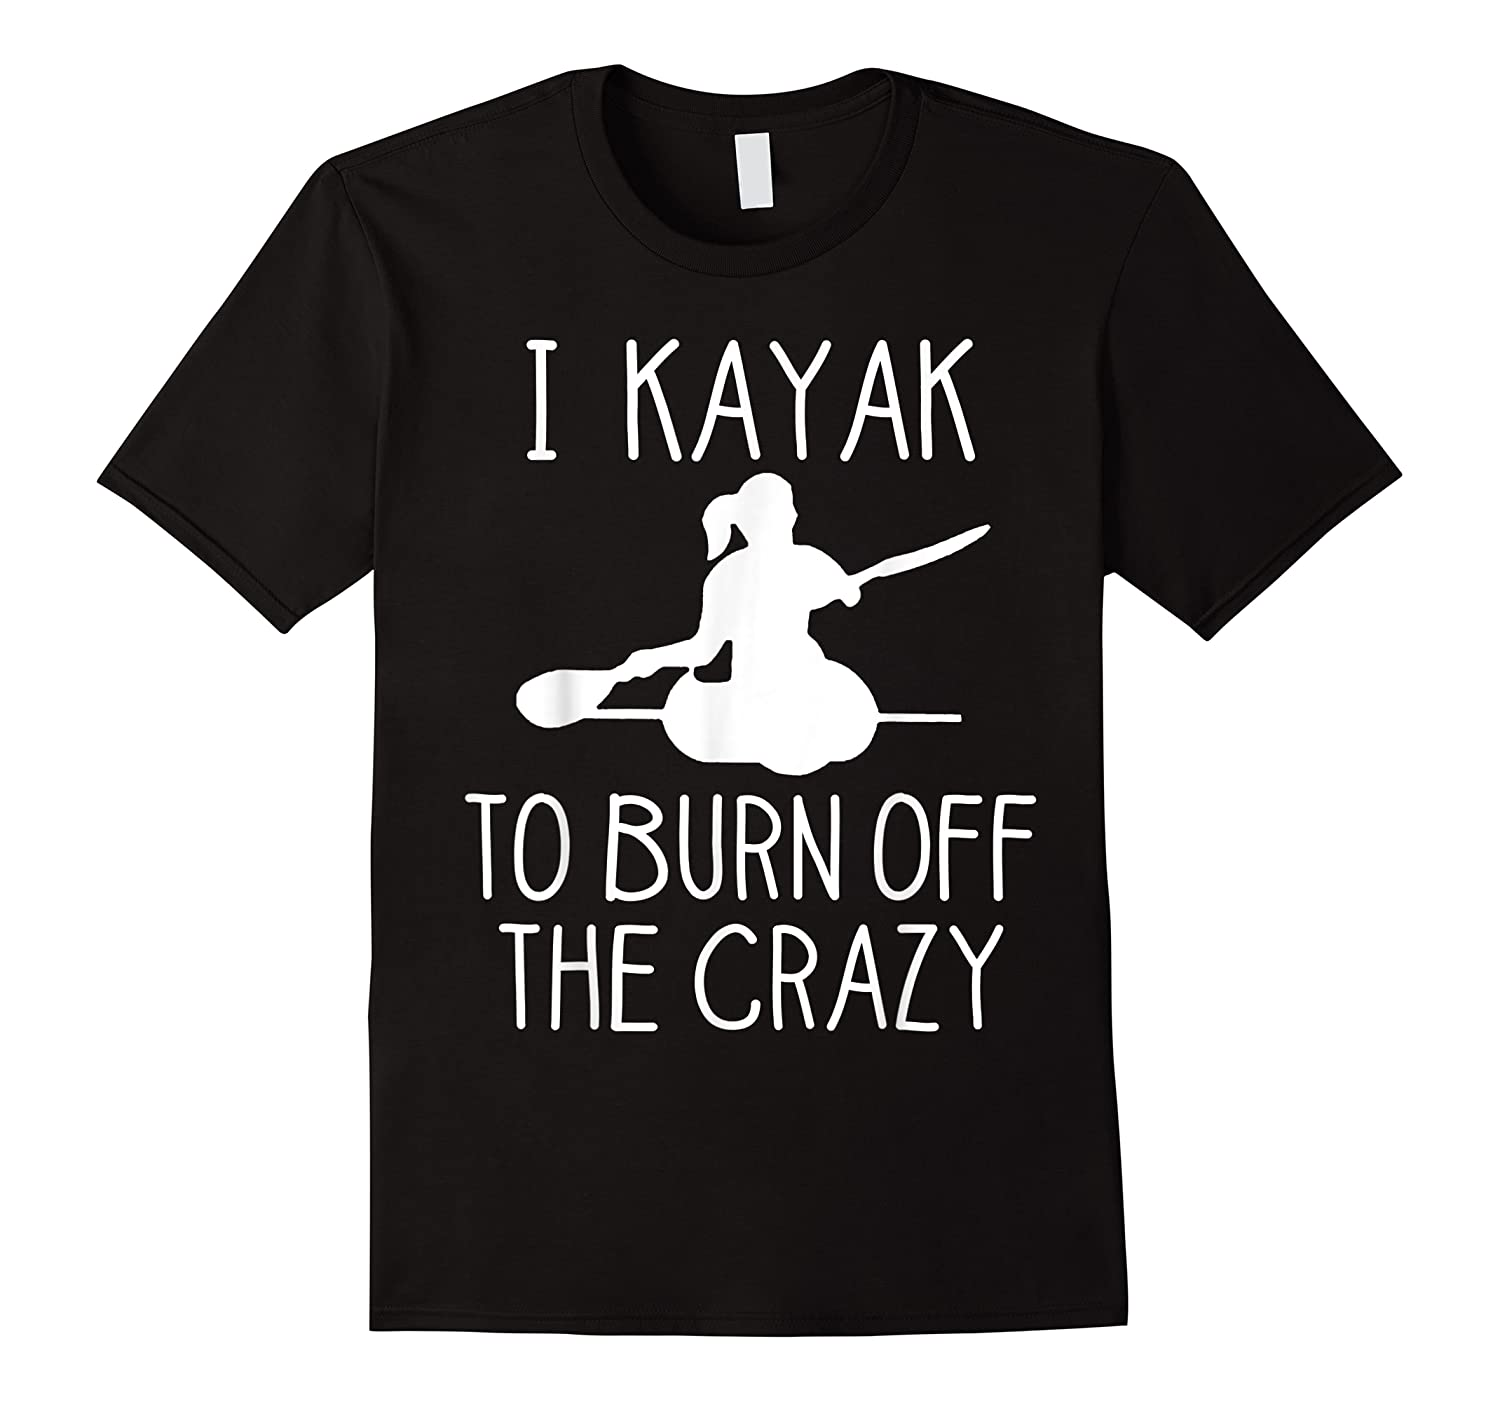 Kayak To Burn Off The Crazy Funny Gift For Shirts